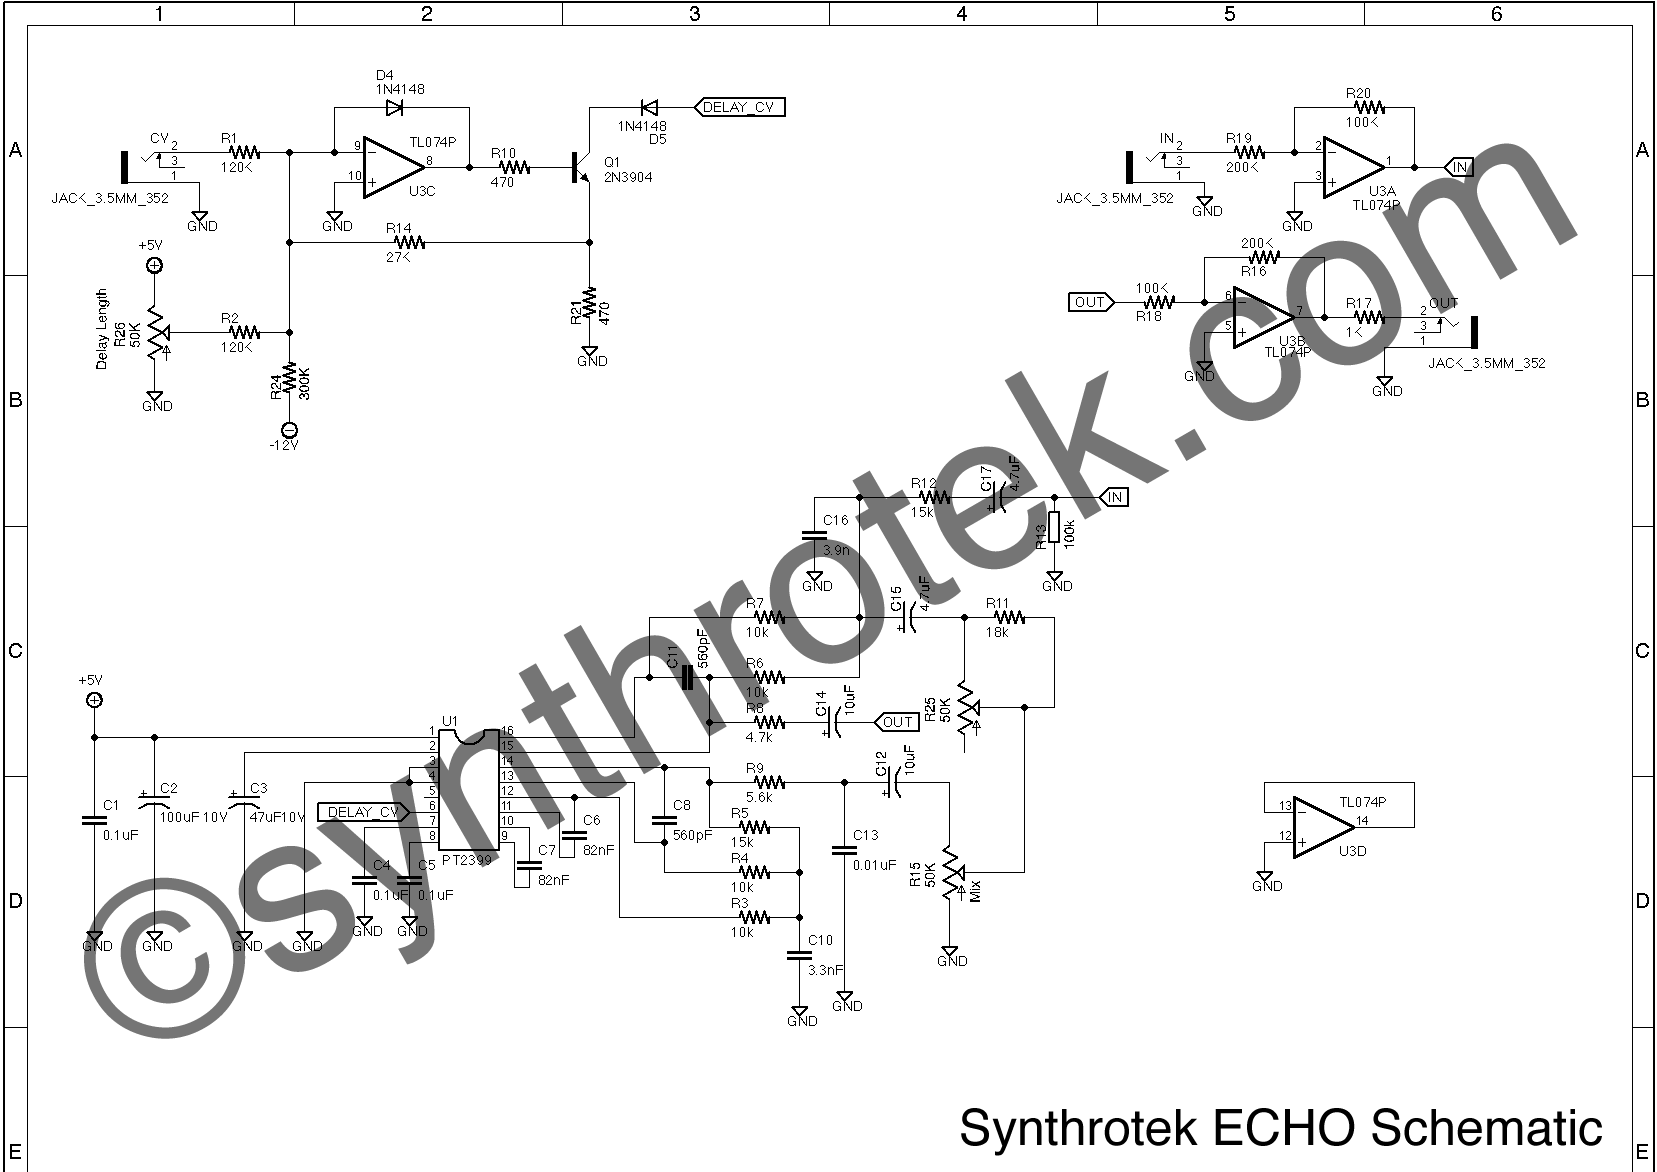 Photo Synthrotek EKO / ECHO : Synthrotek ECHO Schematic